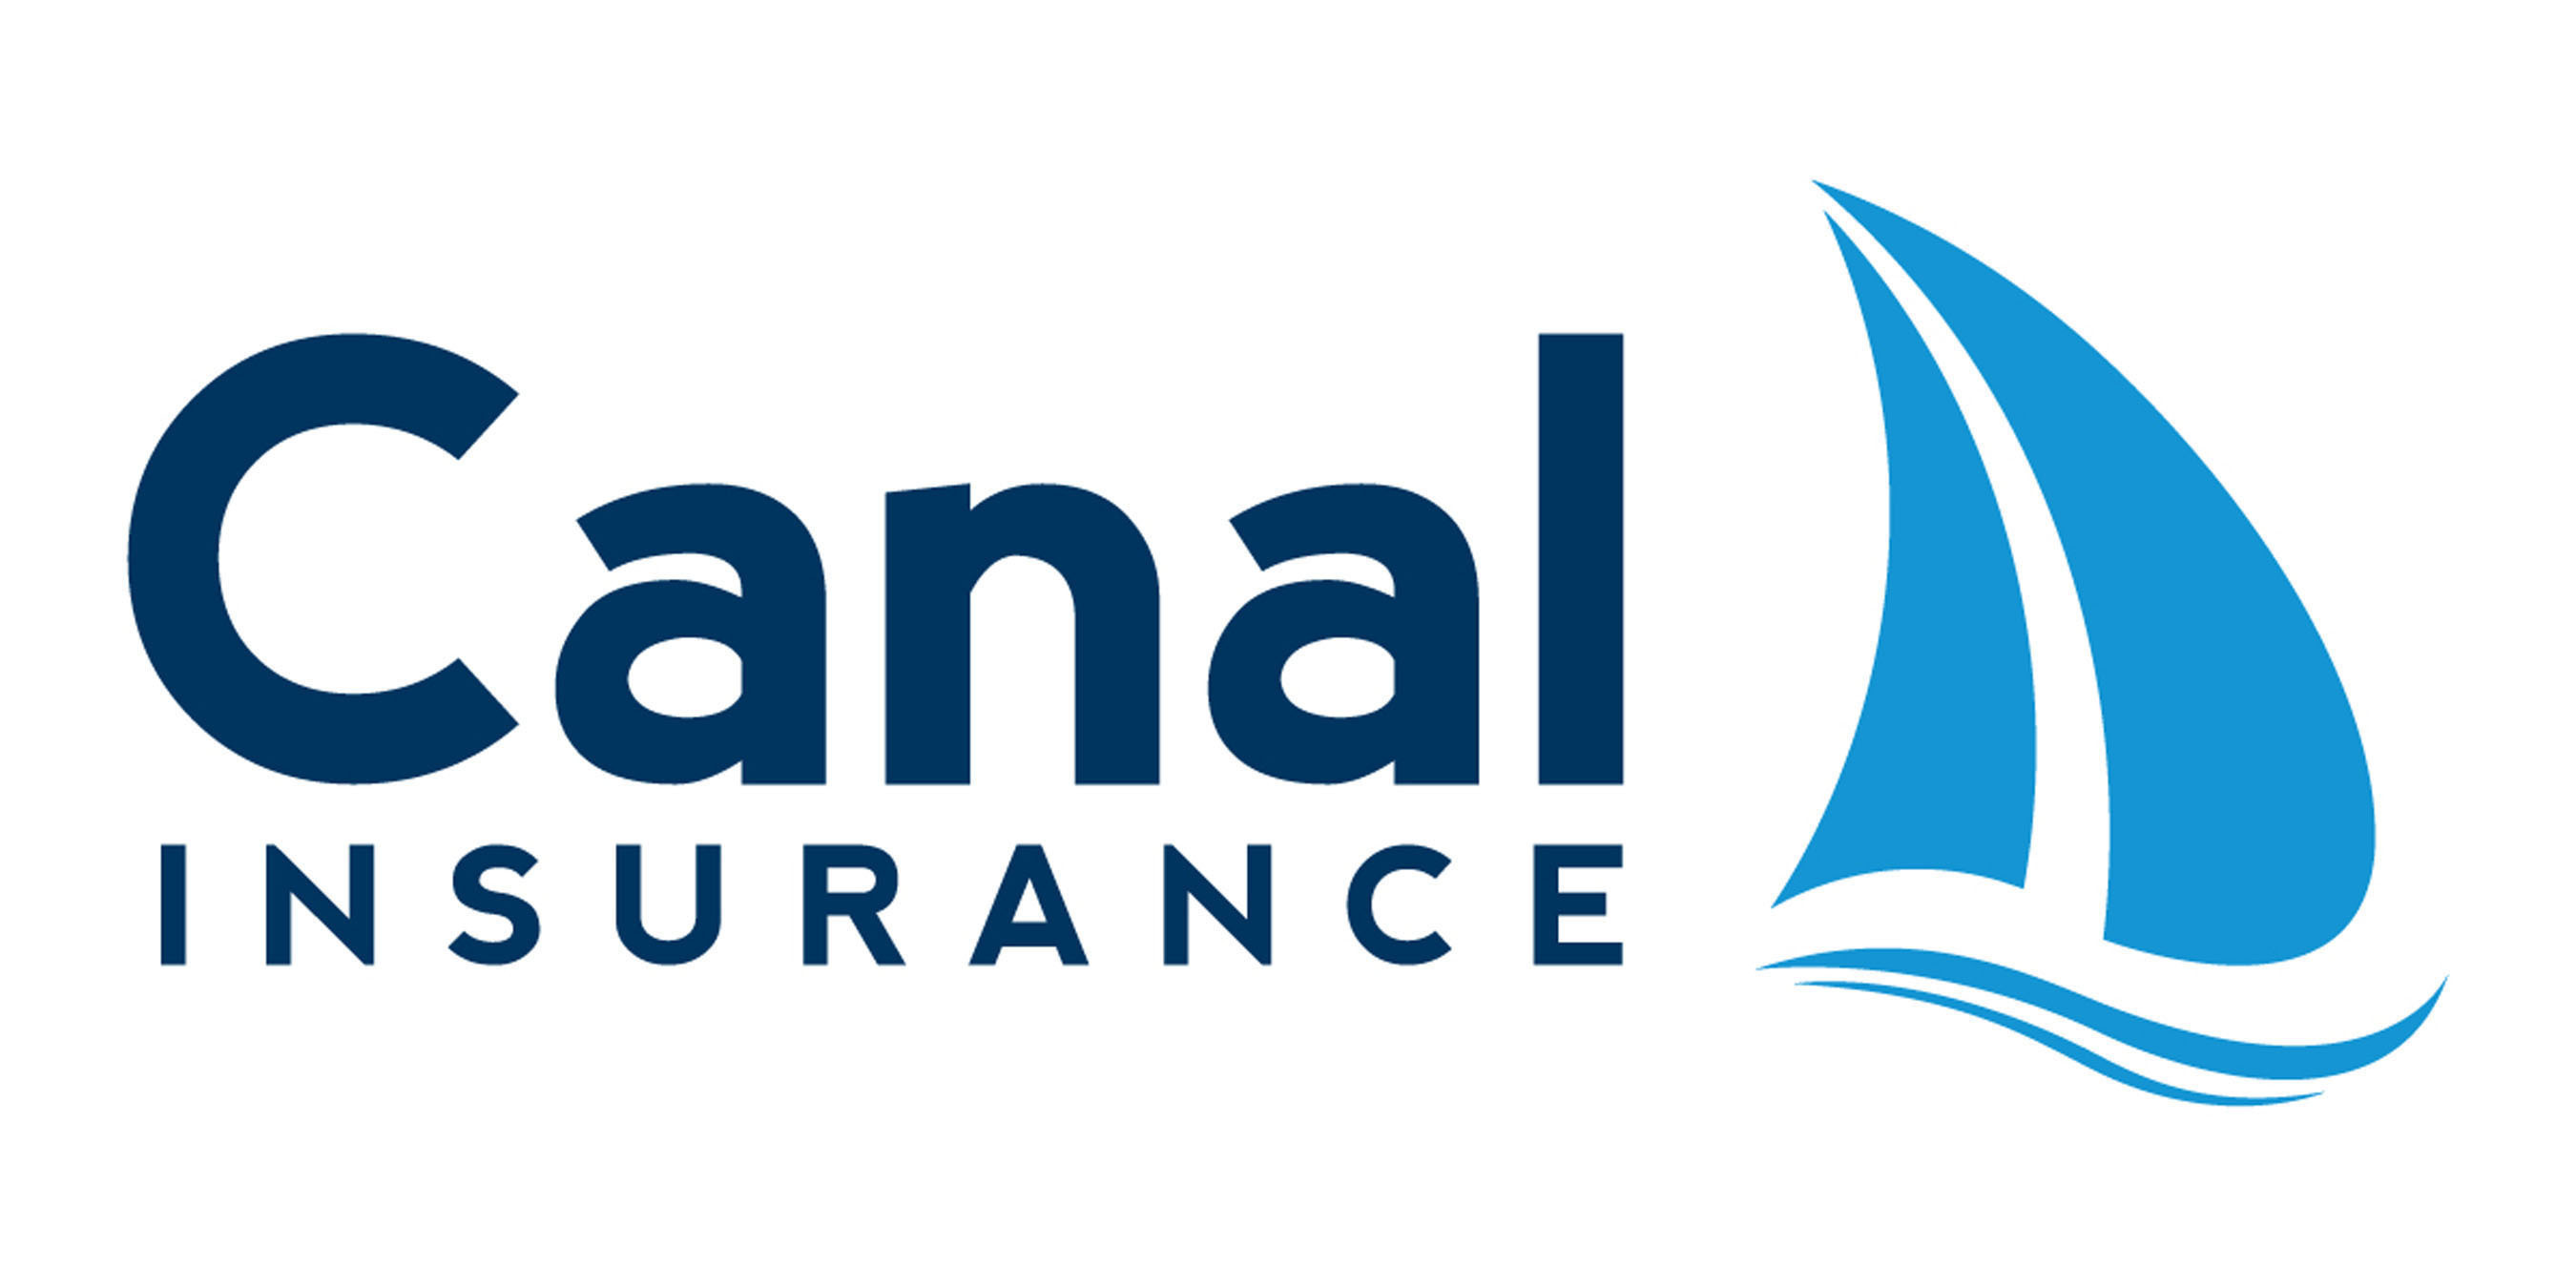 canal insurance company appoints new ceo